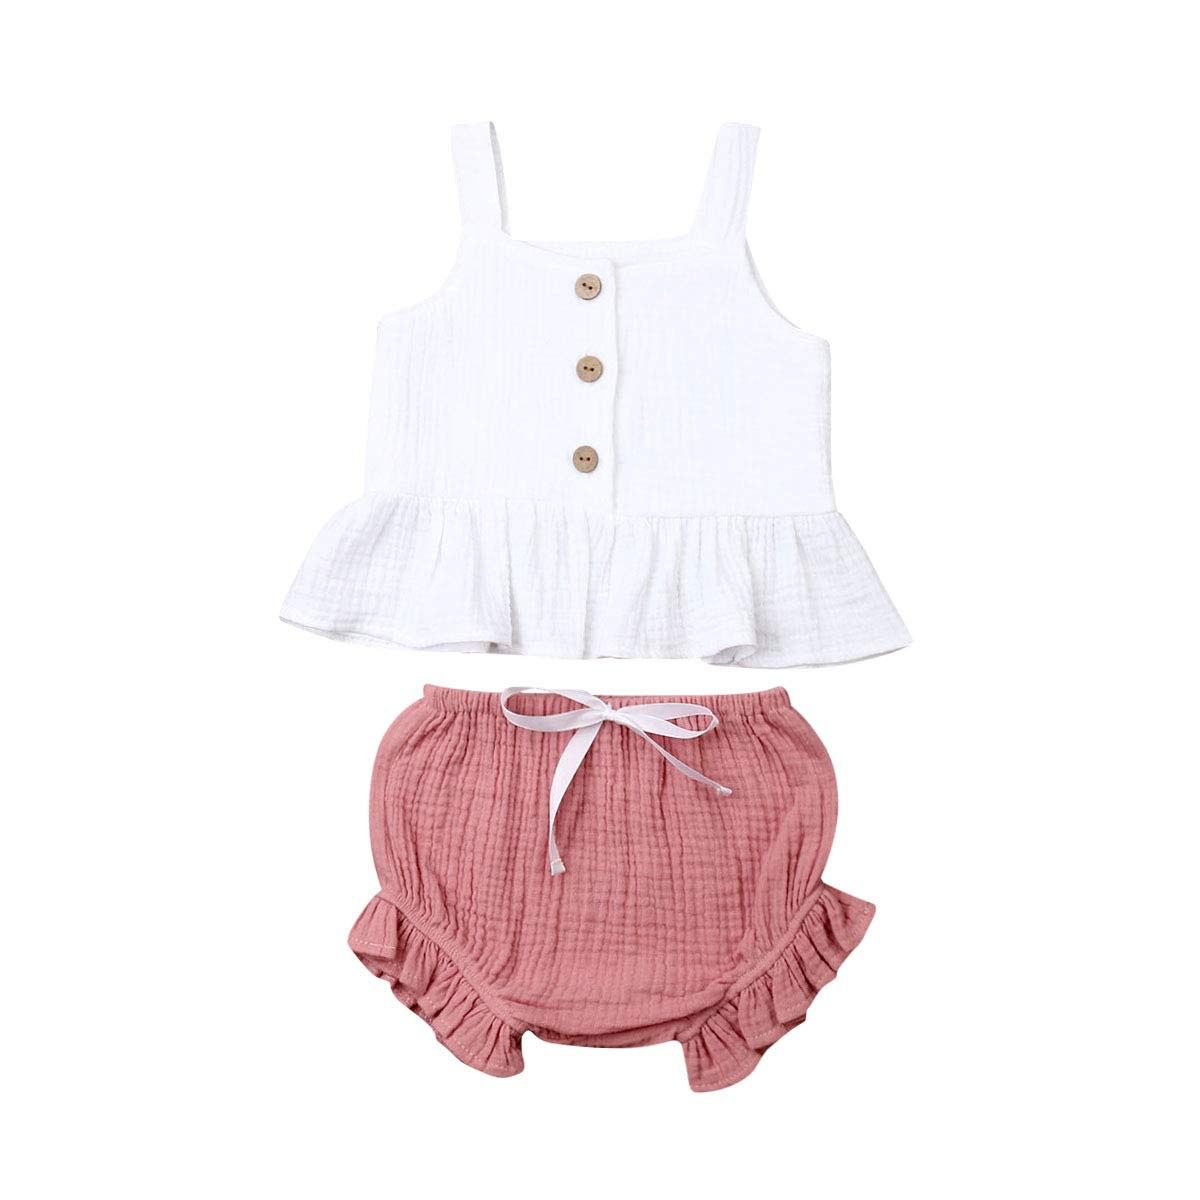 Toddler Kids Baby Girl Cotton Halter Ruffled Outfits Clothes Tops+Shorts 2PCS Set